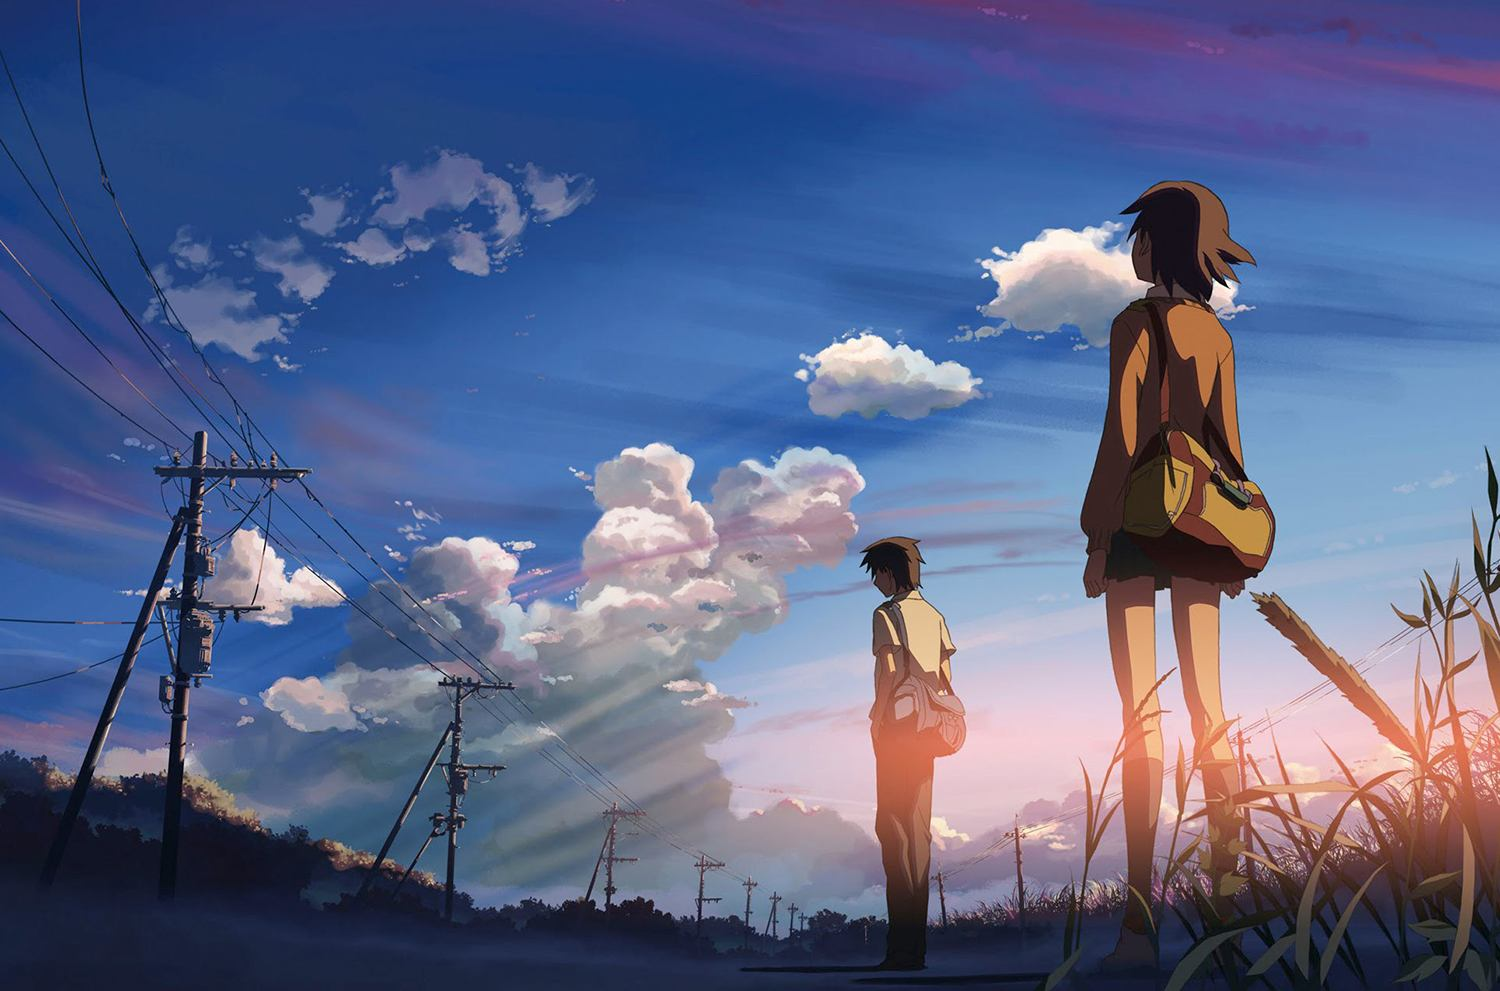 Looking at clouds, 5 Centimeters Per Second